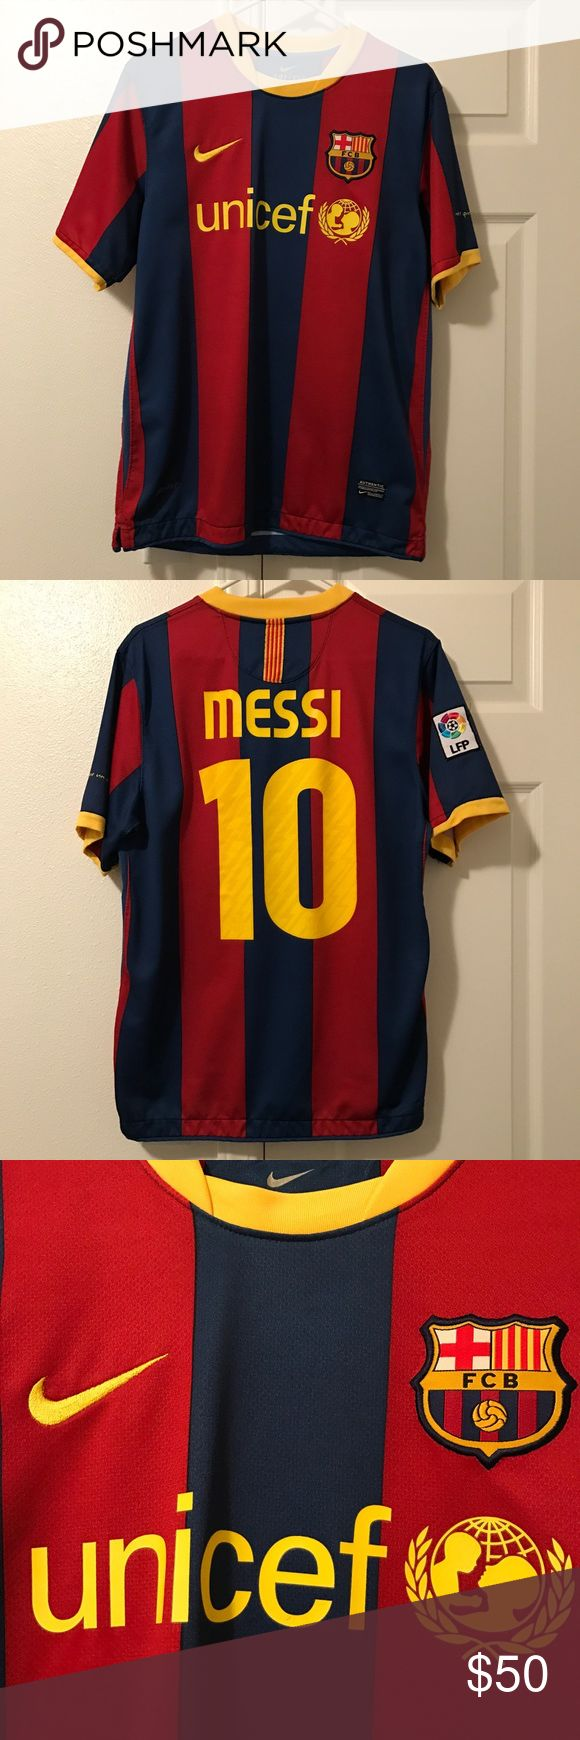 2010/2011 FC Barcelona Jersey 2010/2011 FC Barcelona - Lionel Messi Jersey. This was the last year that the UNICEF logo was front and center! Classic colors and design. Great condition jersey. Must have for any FC Barcelona and Messi fan. Makes a great gift! Reasonable offers gladly accepted. #fcbarcelona #fcbarcelonajersey #jersey #fcb #soccerjersey #lionelmessi #messi #nike #nikejersey #messijersey #classicjersey#nikesoccer #soccer Nike Shirts